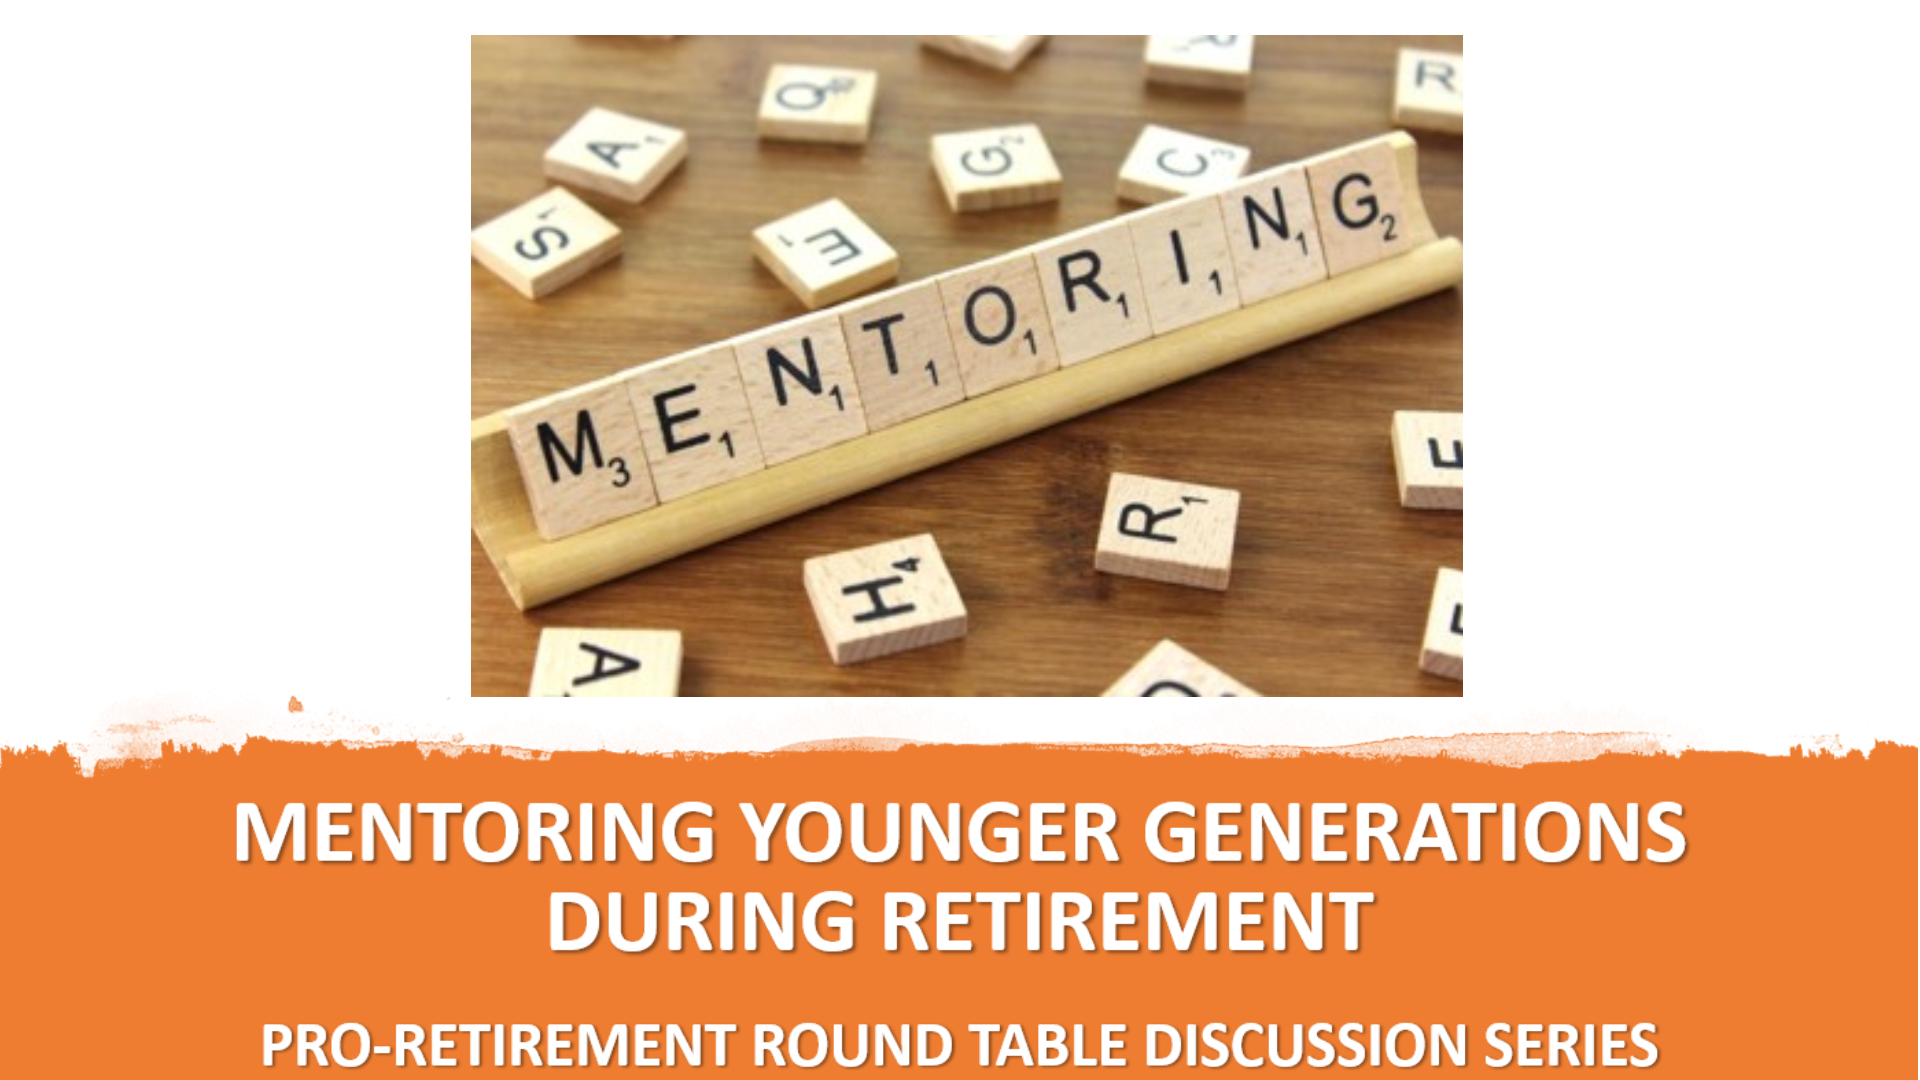 Mentoring Younger Generations During Retirement